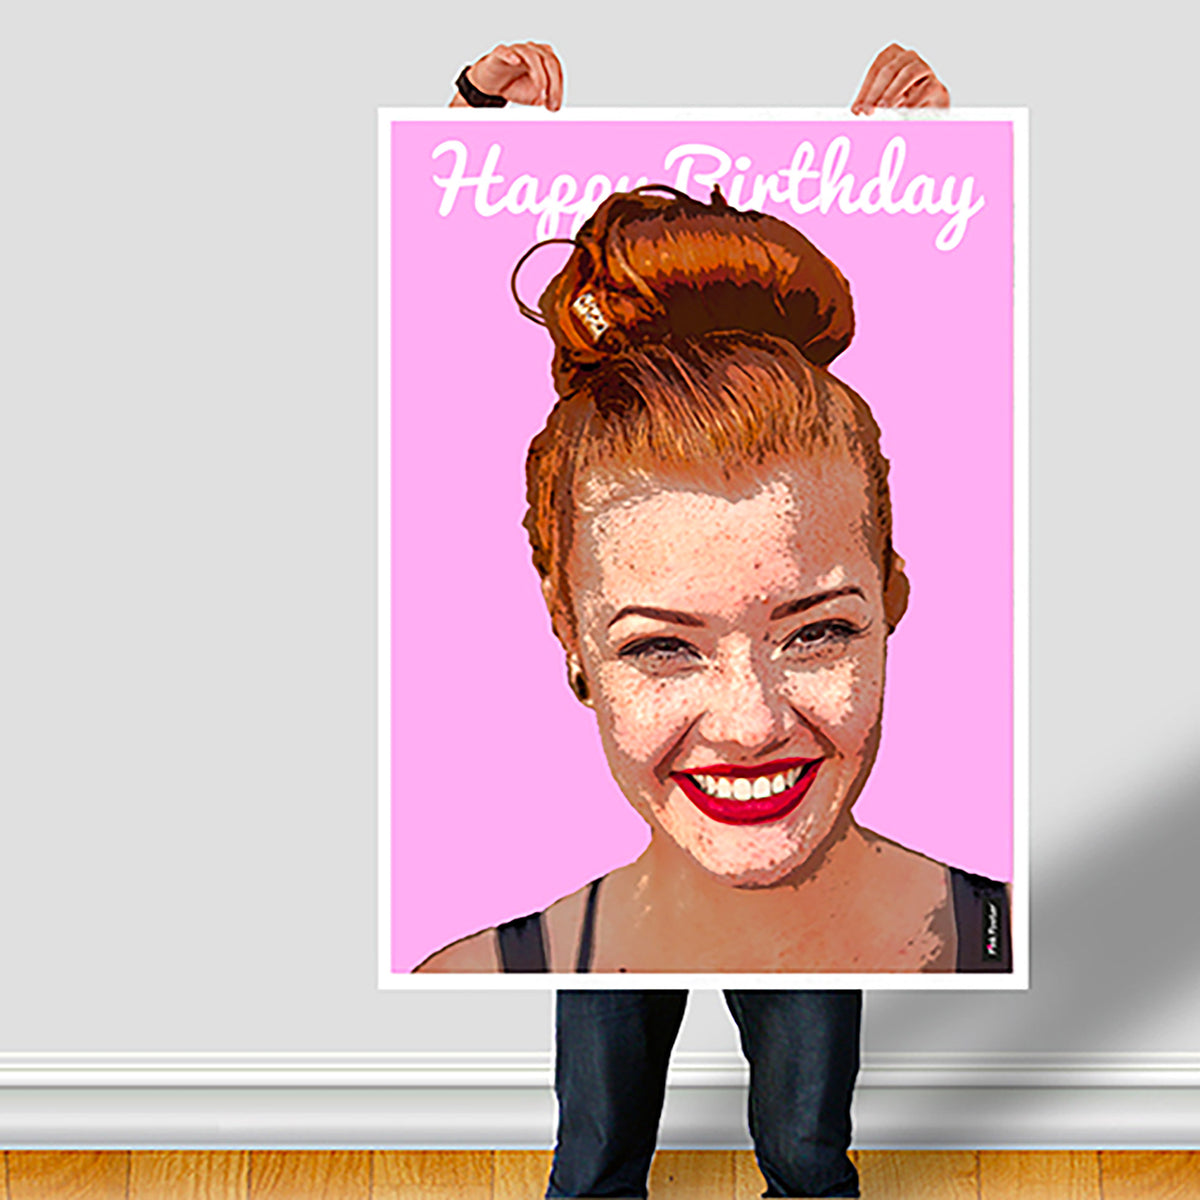 Pop art of lady on a pink poster